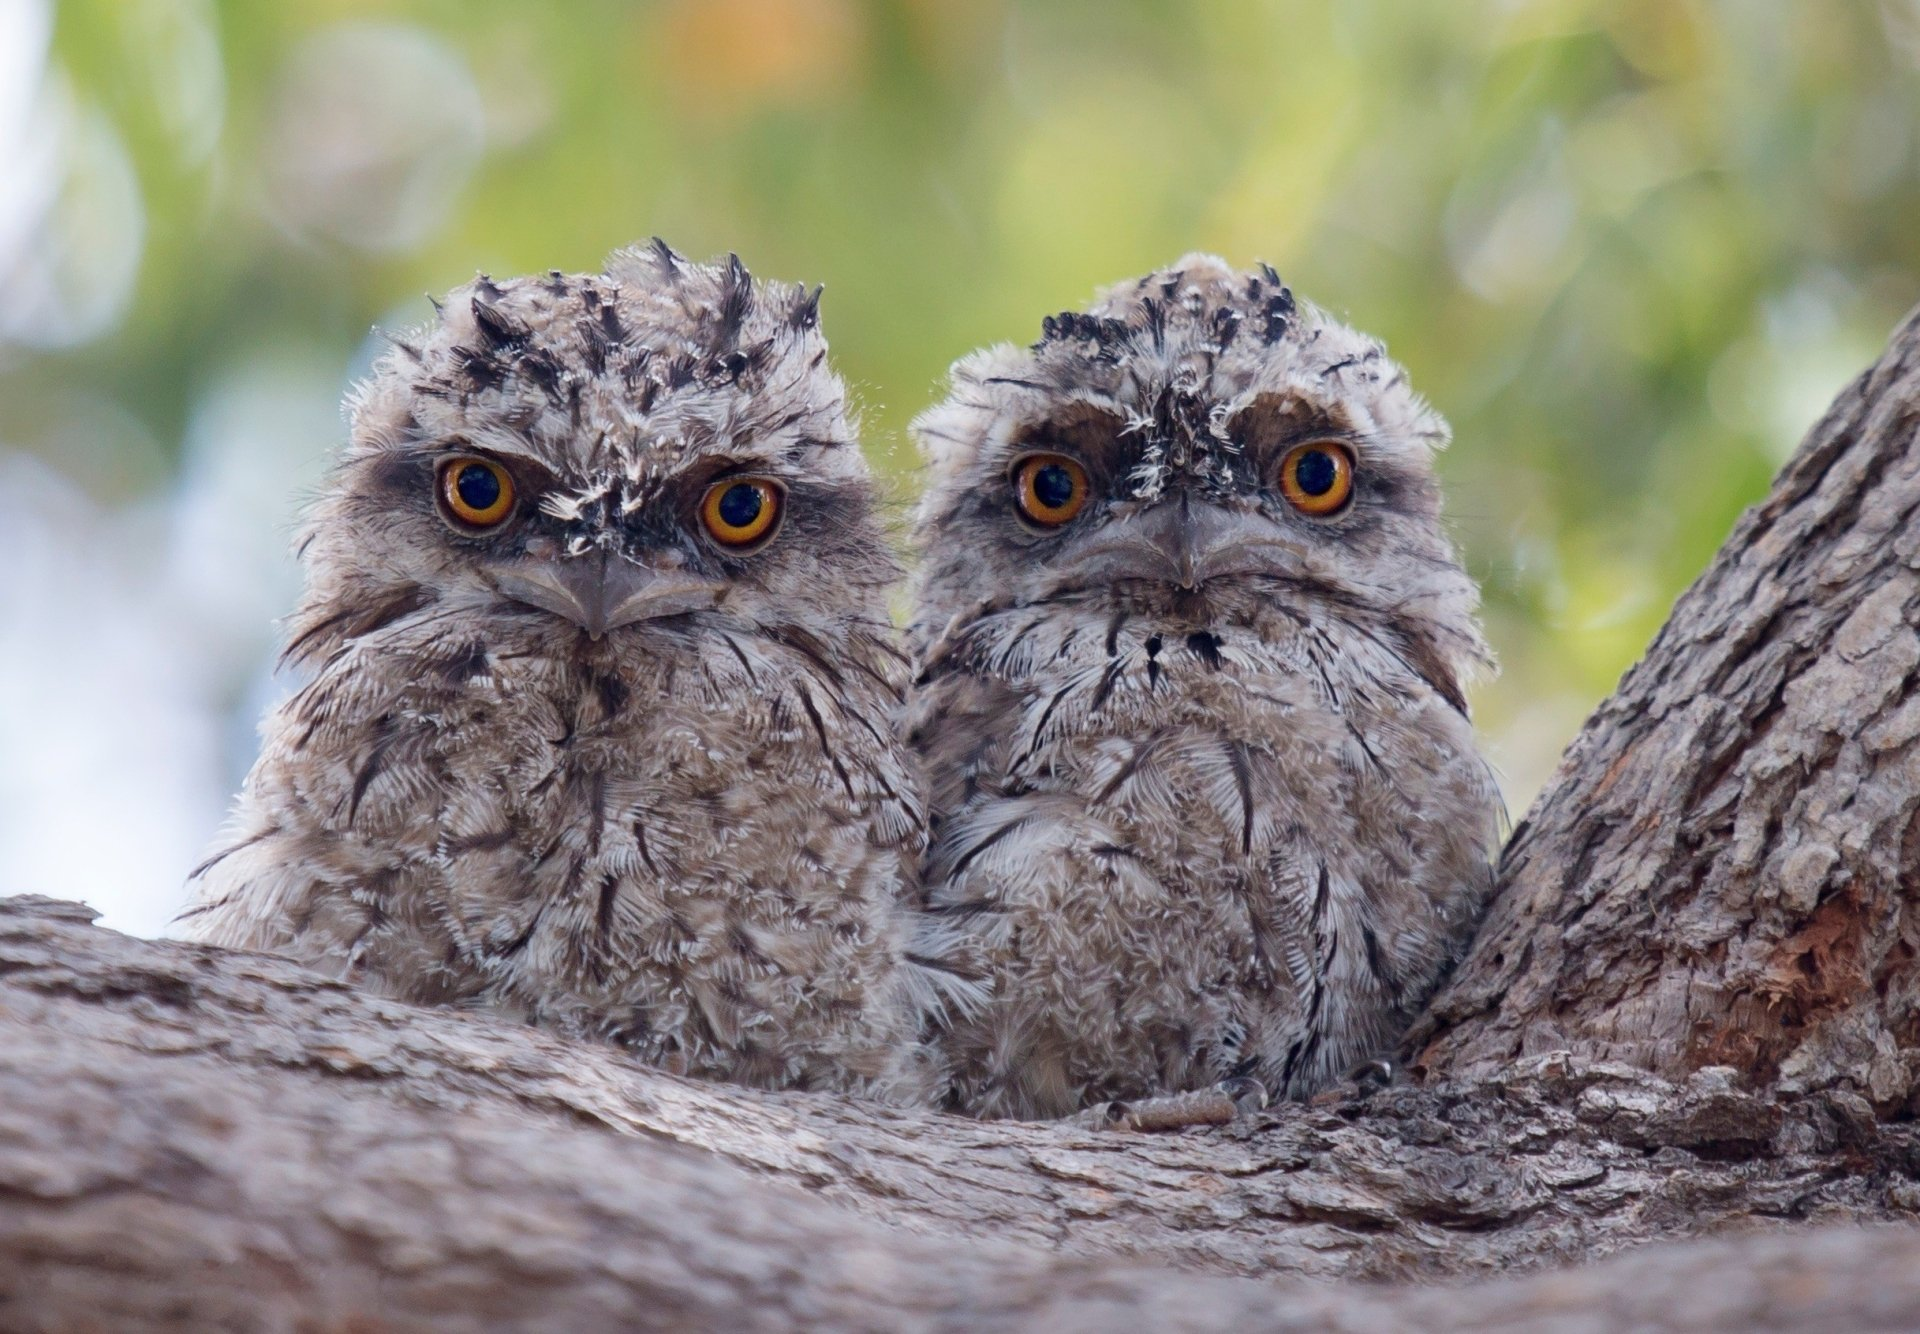 Cute Wallpapers For Facebook Cover Photo Two Owlets On A Tree Branch Hd Wallpaper Background